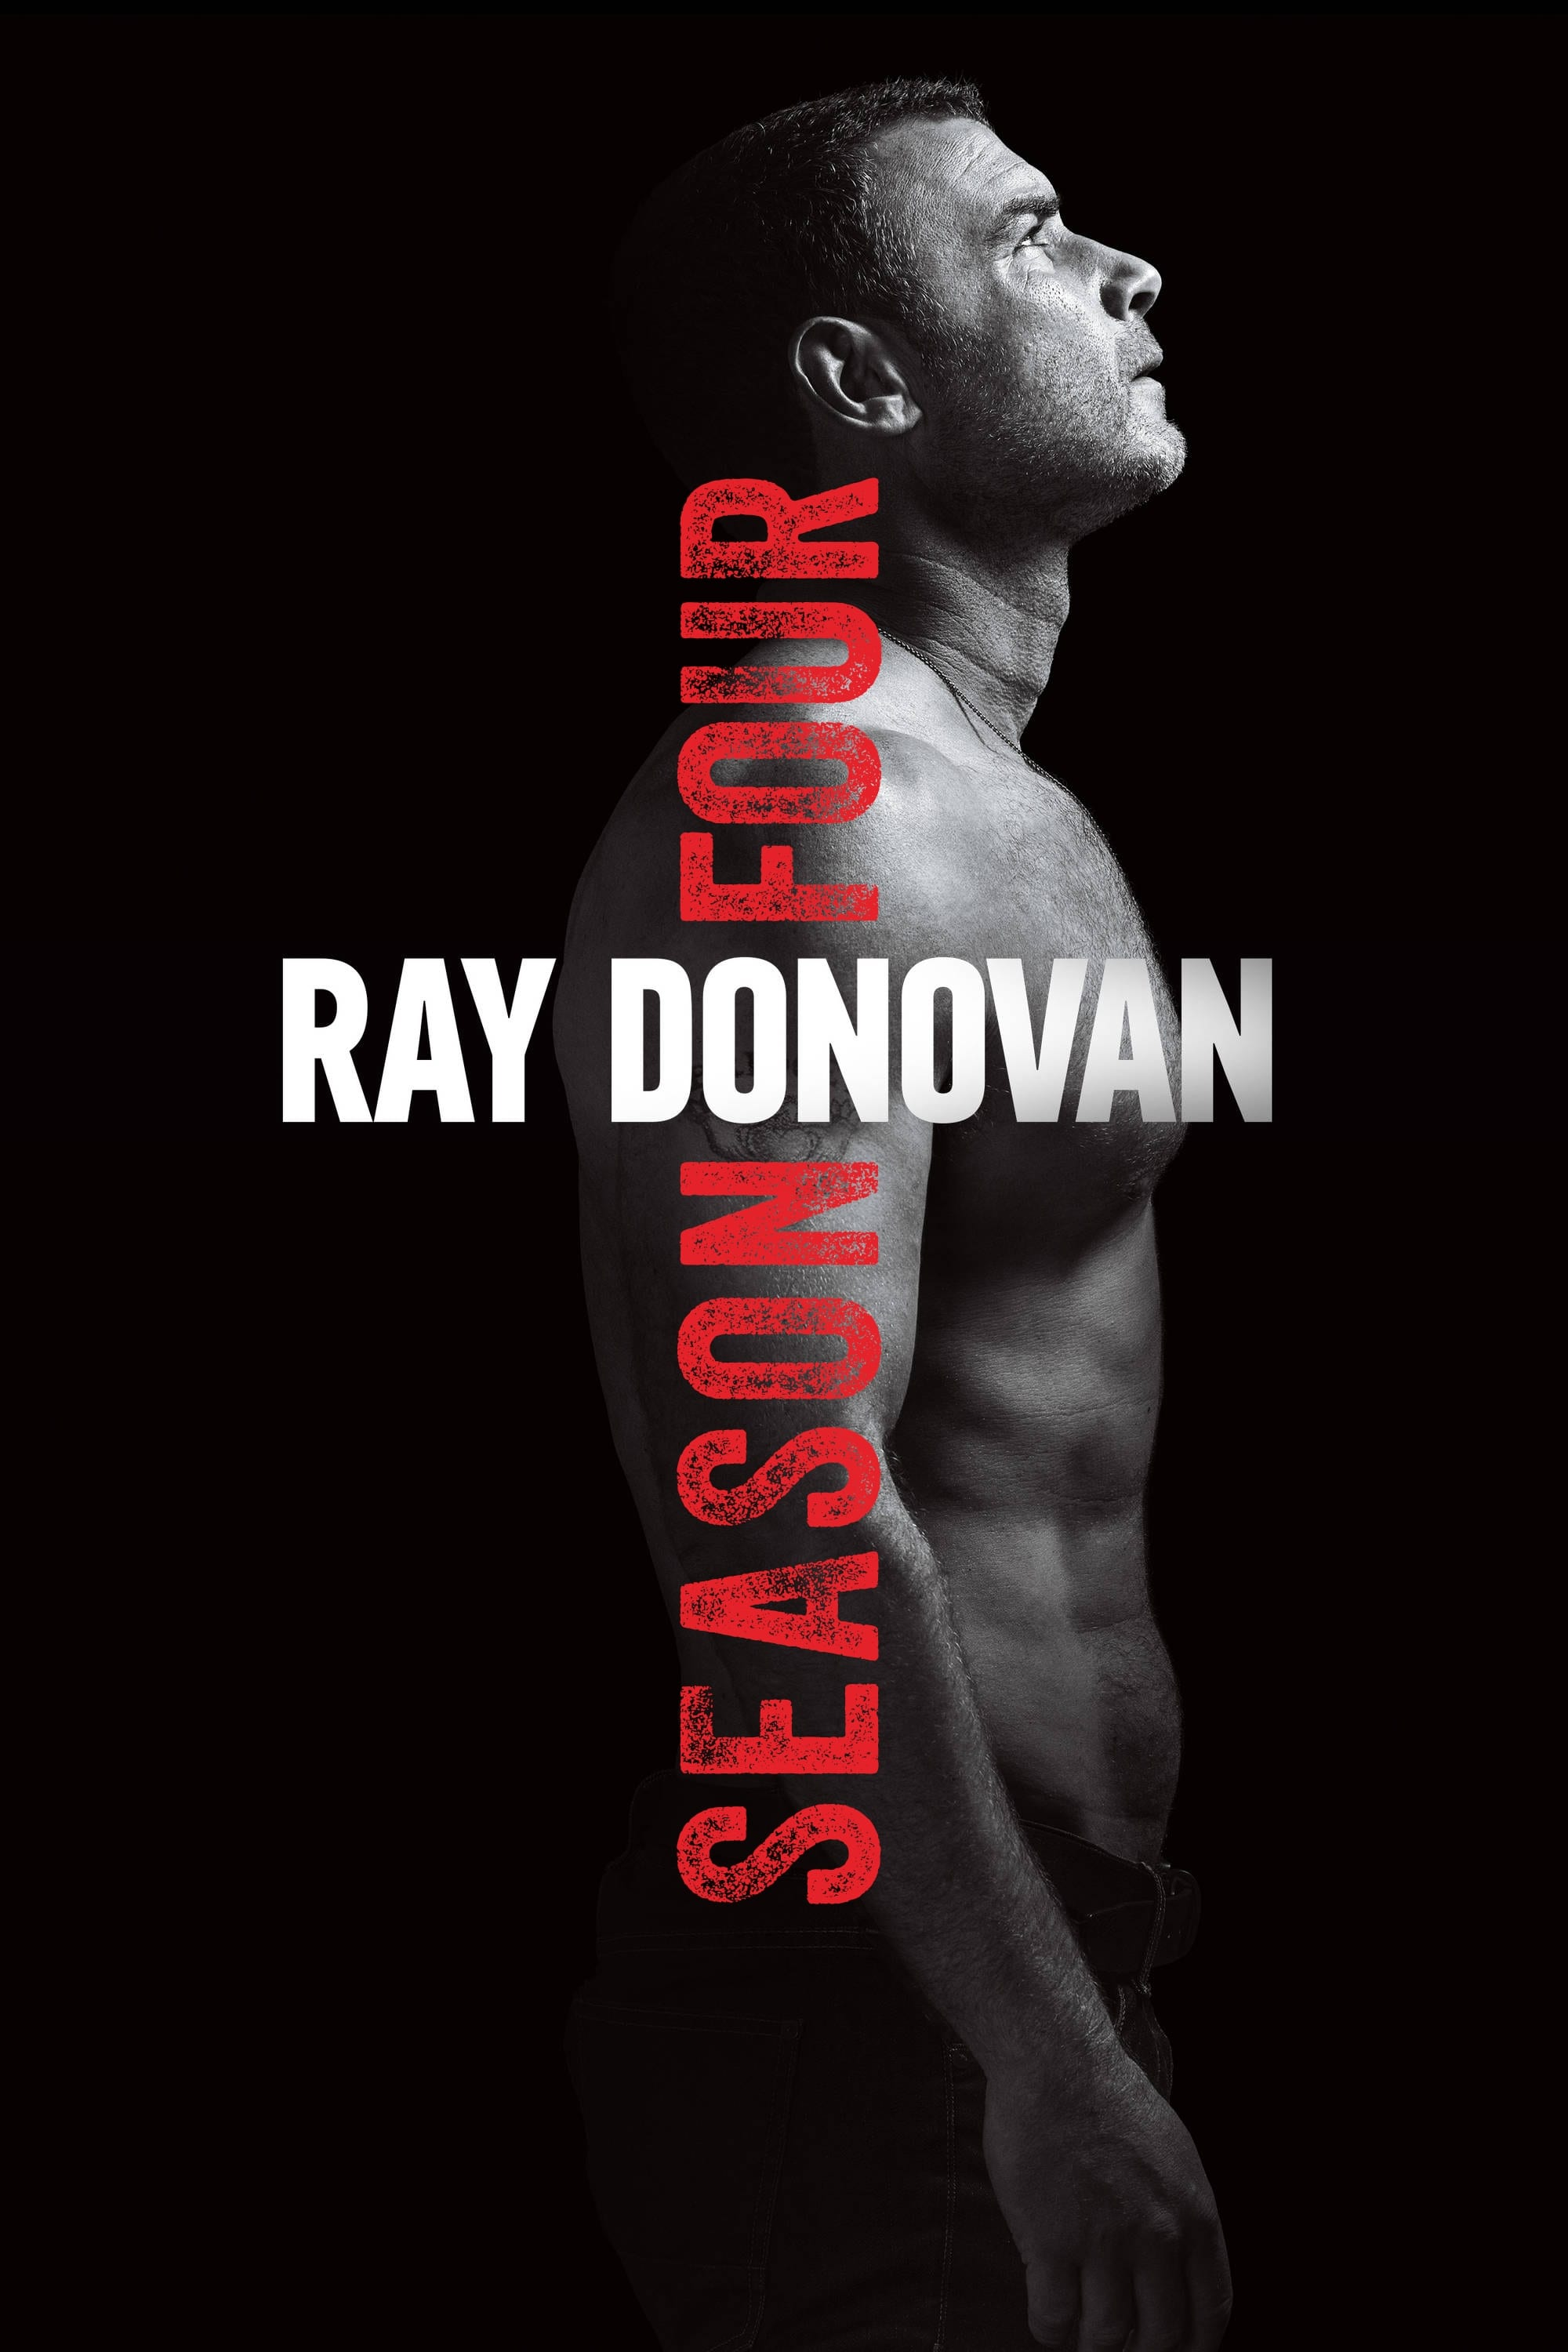 Ray Donovan Season 4